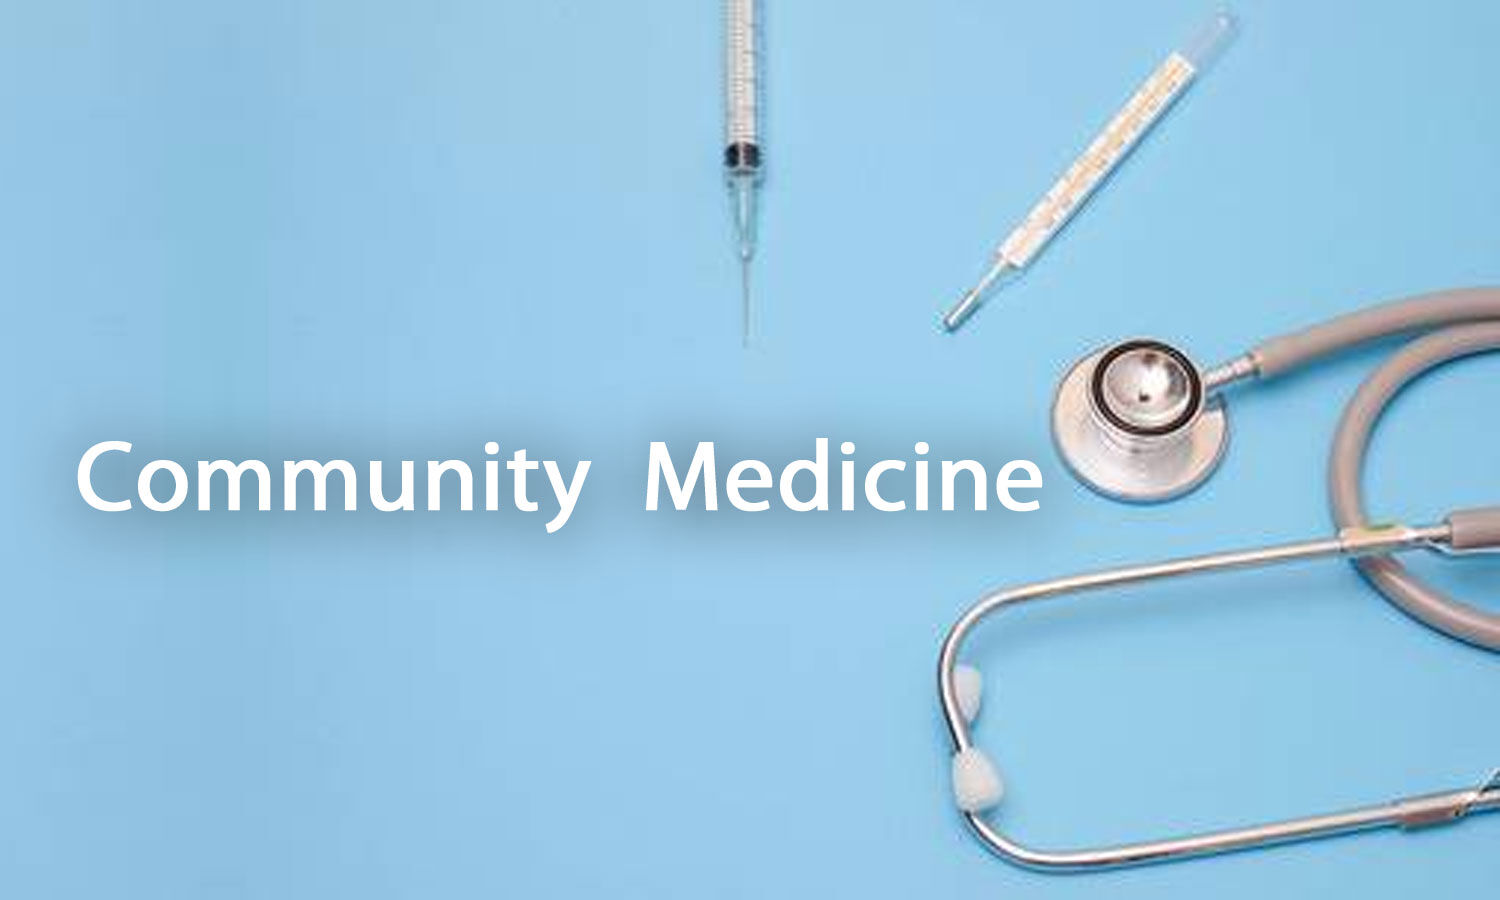 RGUHS releases Revised Ordinance for MBBS, Curriculum of Phase 1 Community Medicine